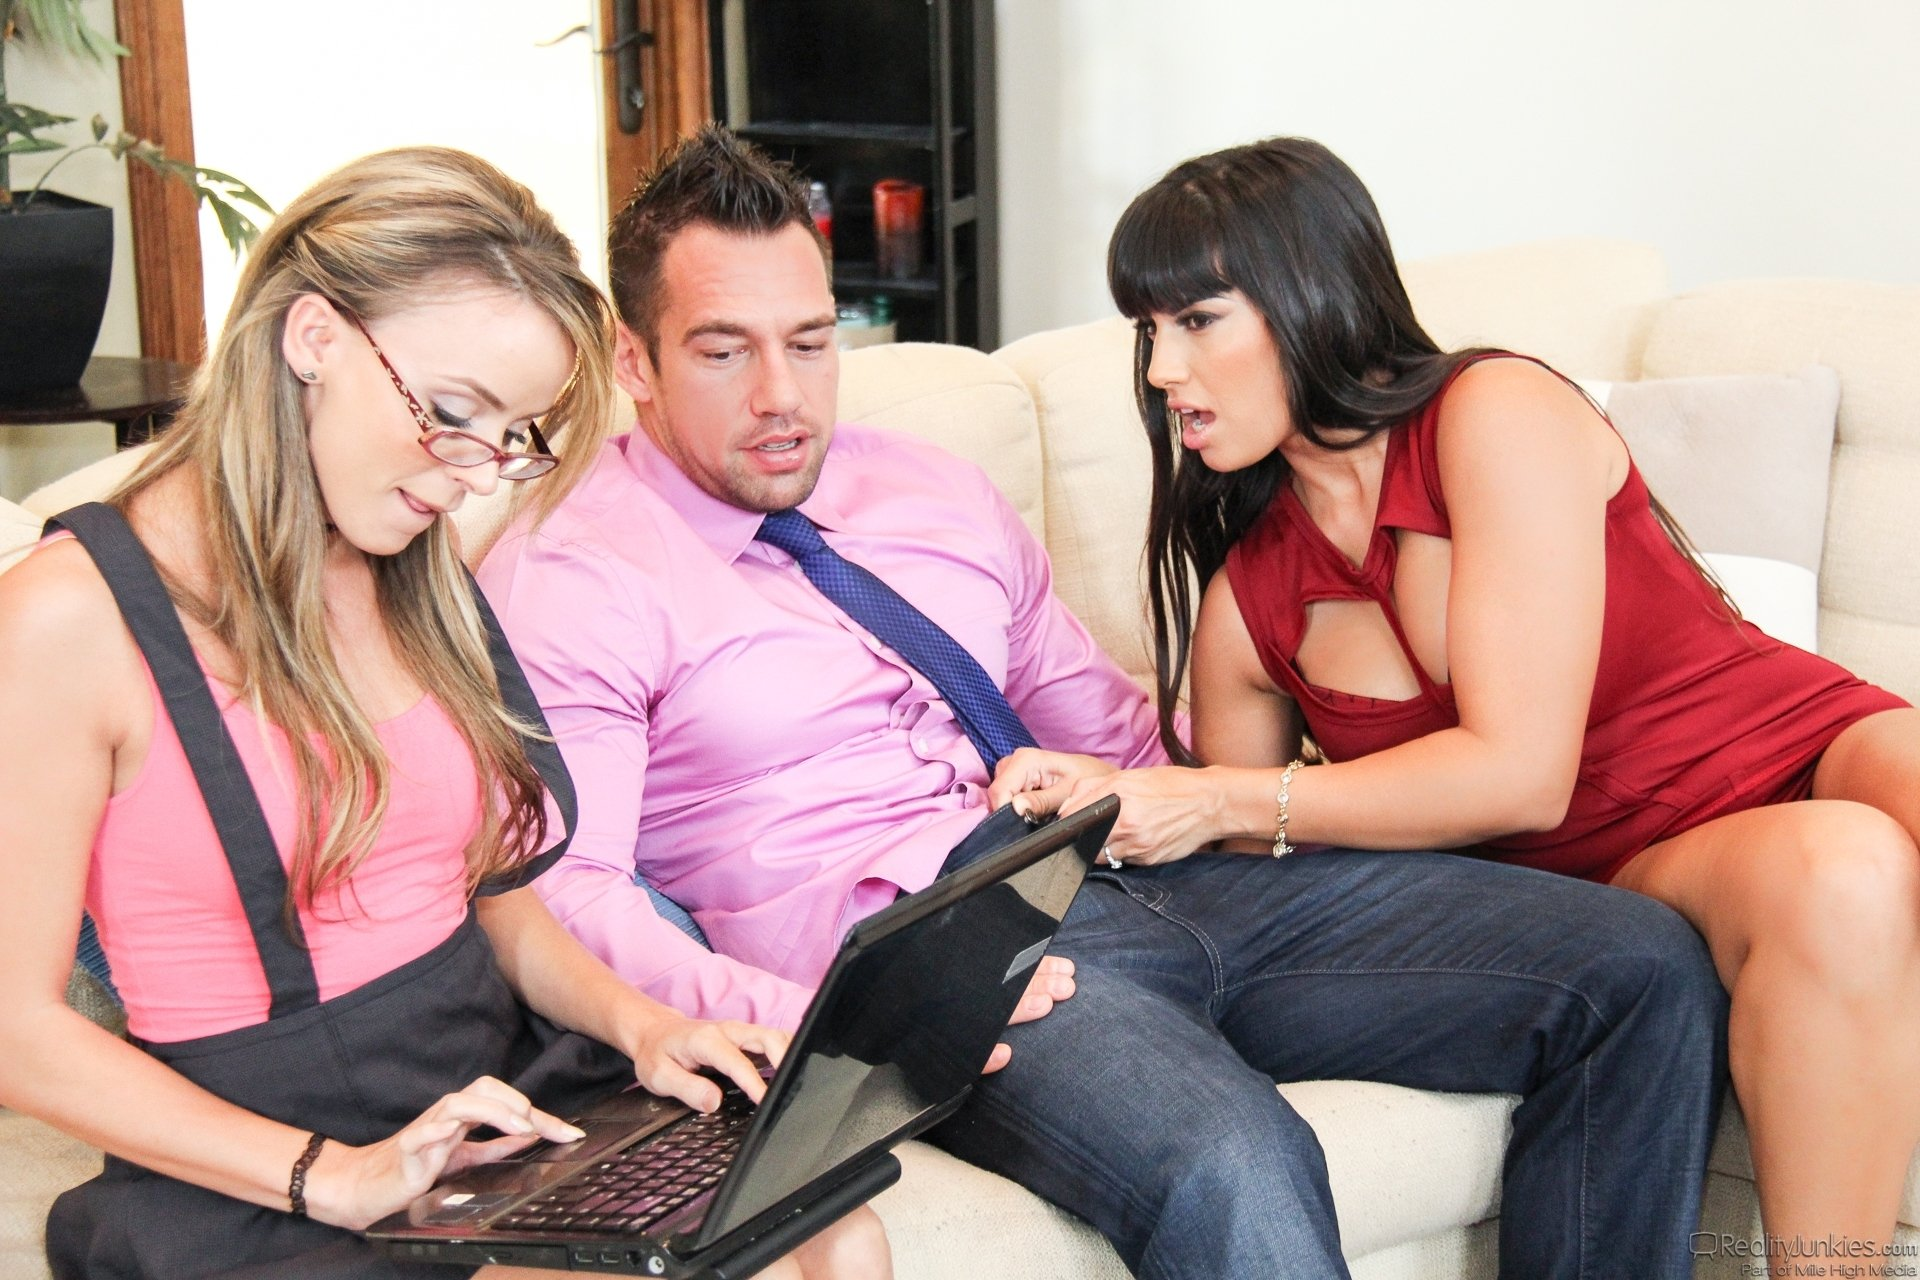 Webcam hd t threesome wife and her friend